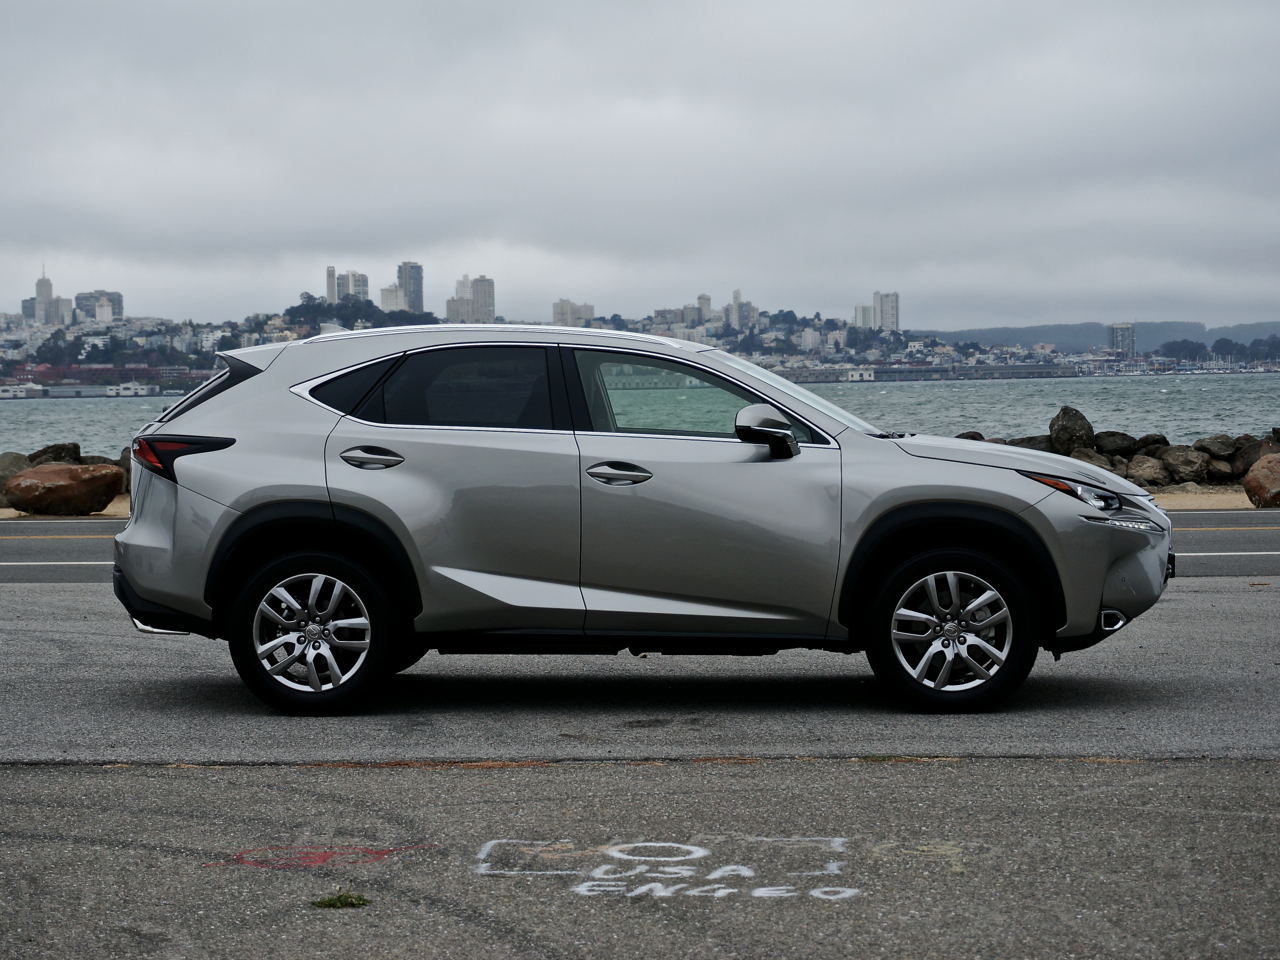 With a touchpad and a turbo, the NX 200t is like no Lexus before